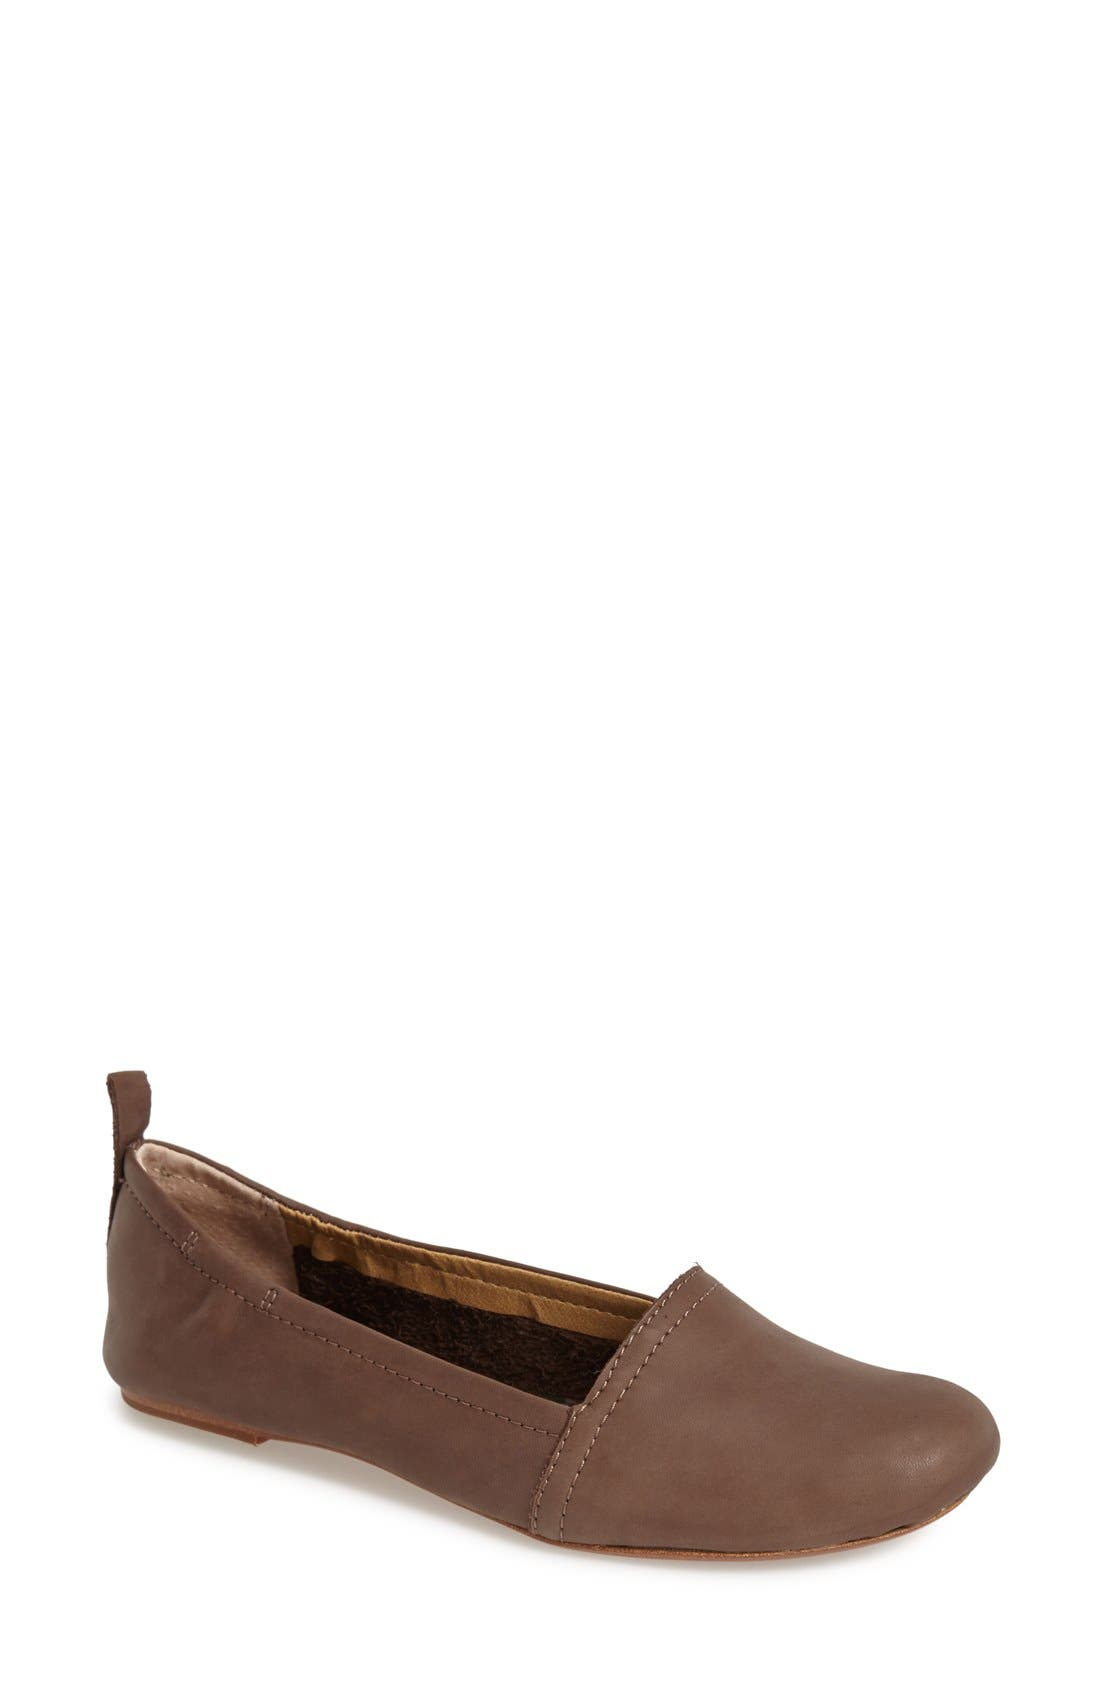 'Bettie' Leather Flat,                             Main thumbnail 1, color,                             Dark Brown